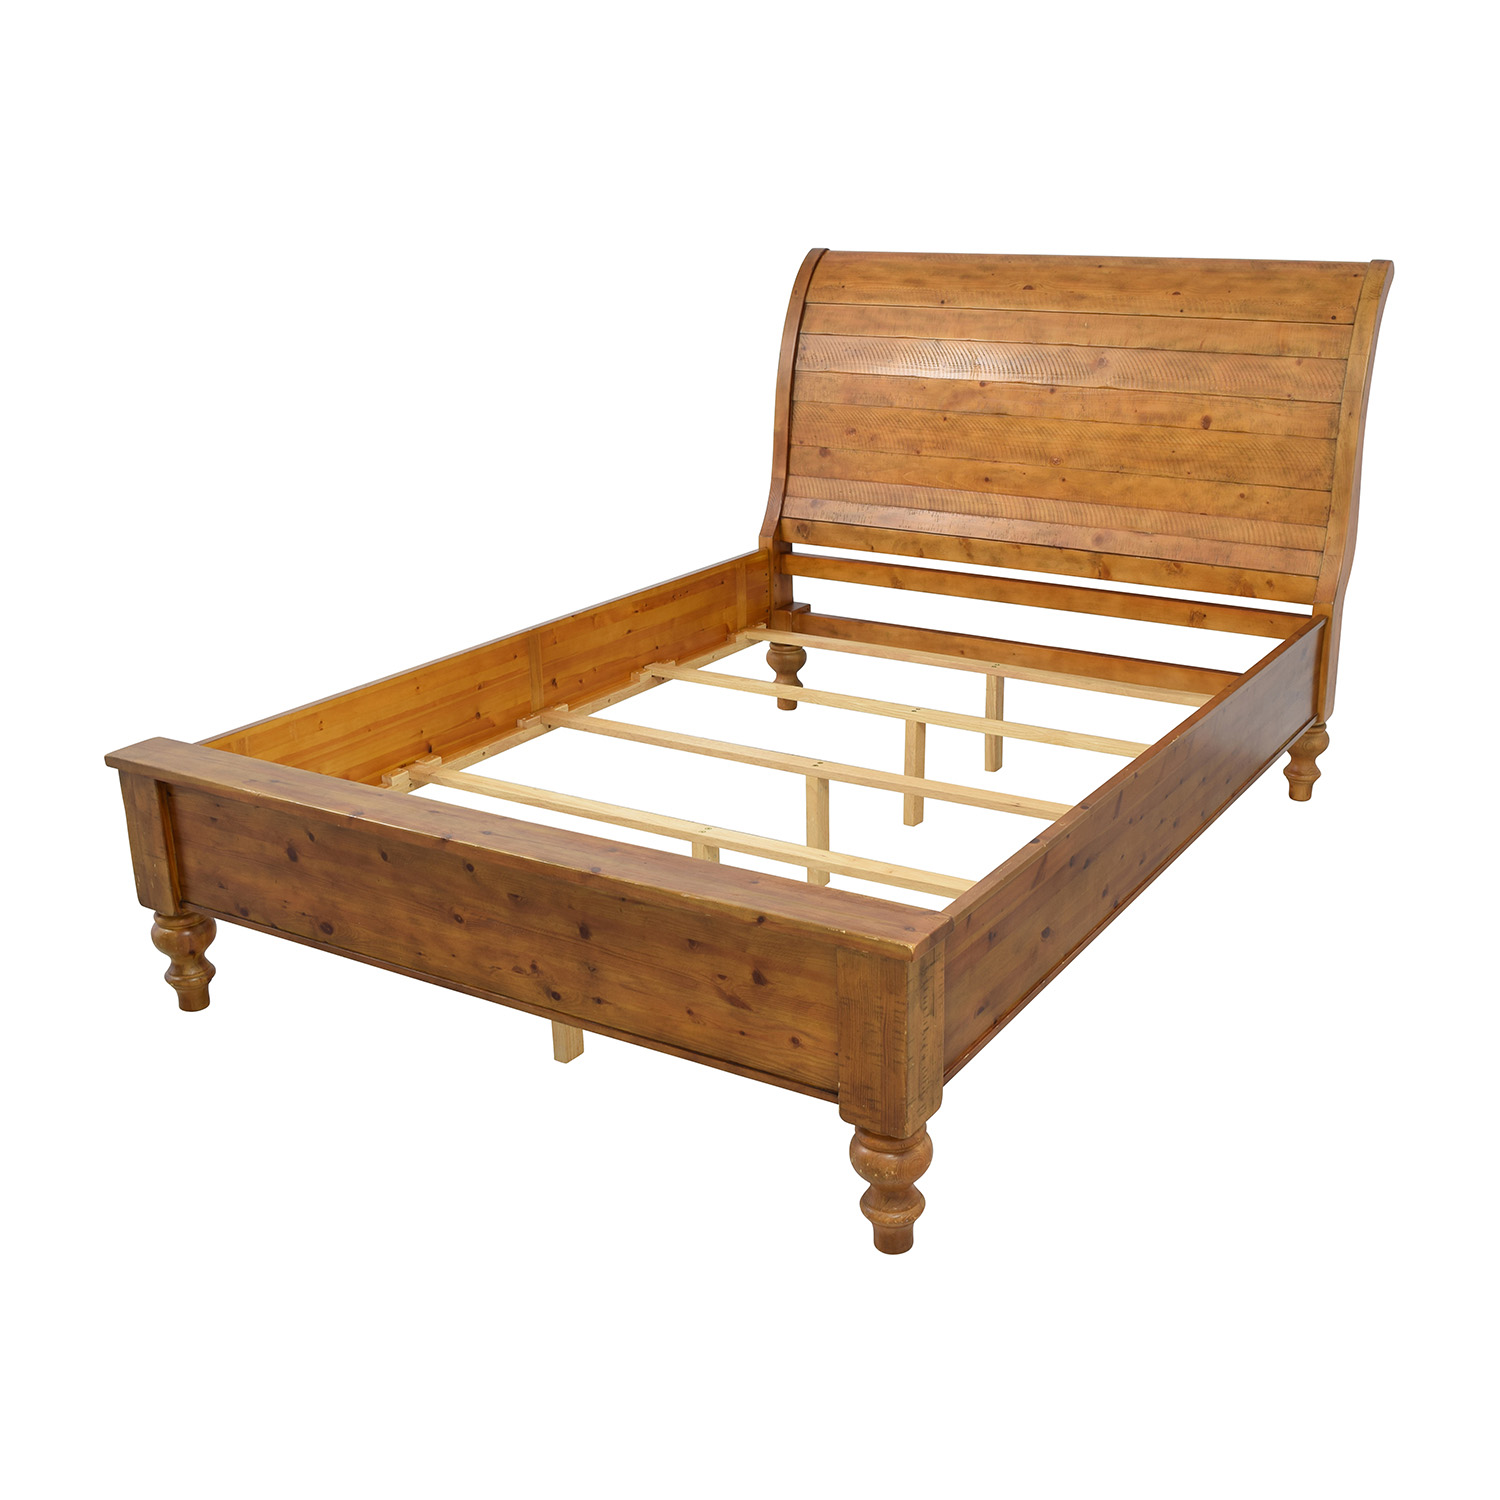 46 Off Pottery Barn Pottery Barn Ashby Queen Sleigh Bed